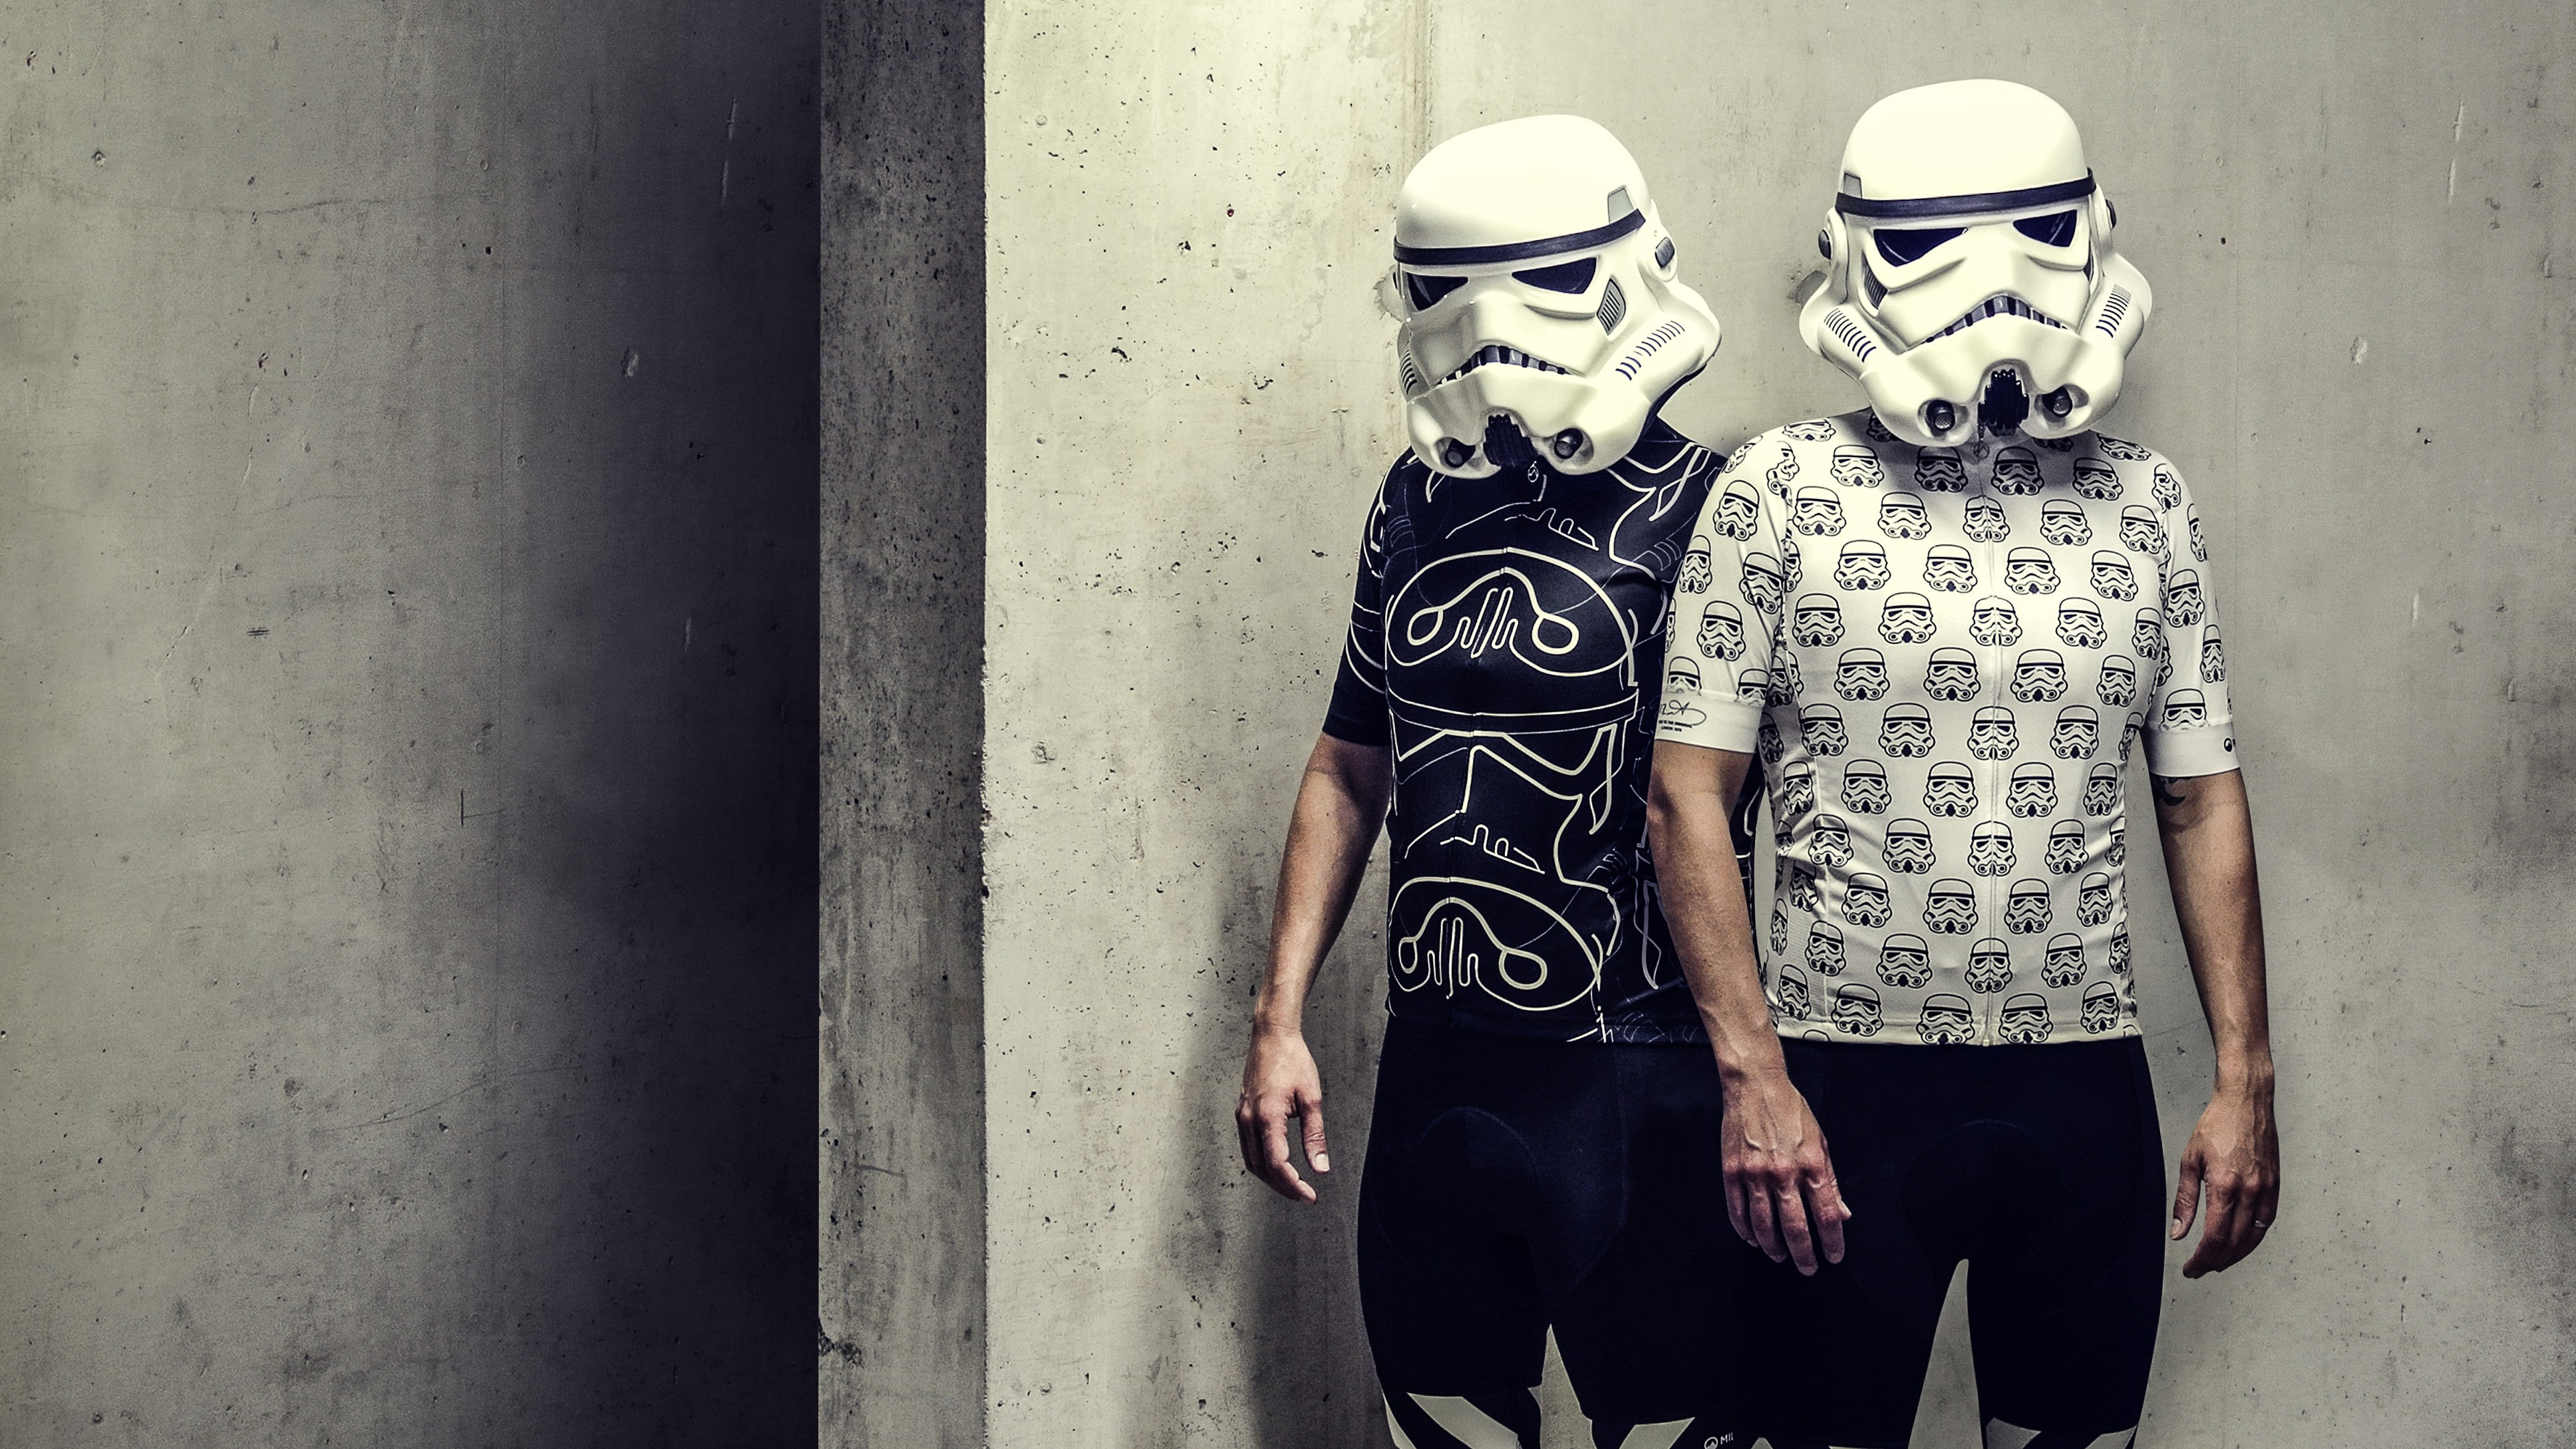 The jerseys are available in two designs: the white Garrison and black Shadow